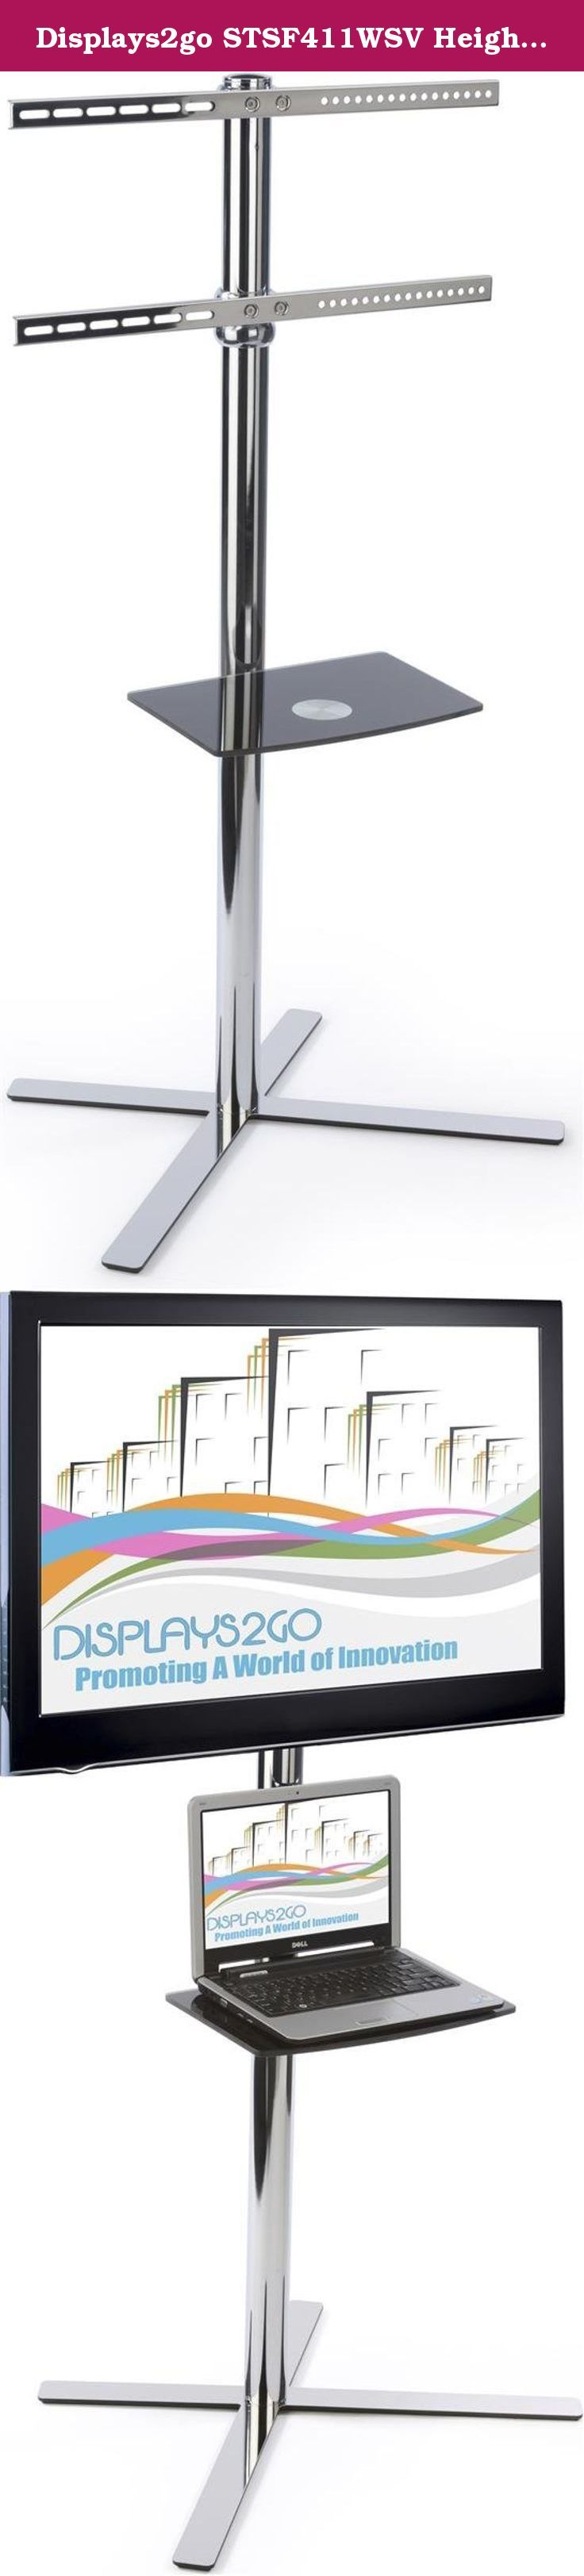 """Displays2go STSF411WSV Height Adjustable TV Floor Stand, Fits 32 to 60-Inch HDTVs, Height Adjustable Mount and Shelf (Steel). This height adjustable TV floor stand fits monitors and televisions sized from 32"""" to 60"""" in diagonal size. The VESA compatible TV bracket has a weight limit of 66 lbs., and can pan/tilt to achieve a desirable viewing angle. This TV stand has a height adjustable bracket, as well as a height adjustable shelf. The shelf is great for holding accessories and components..."""